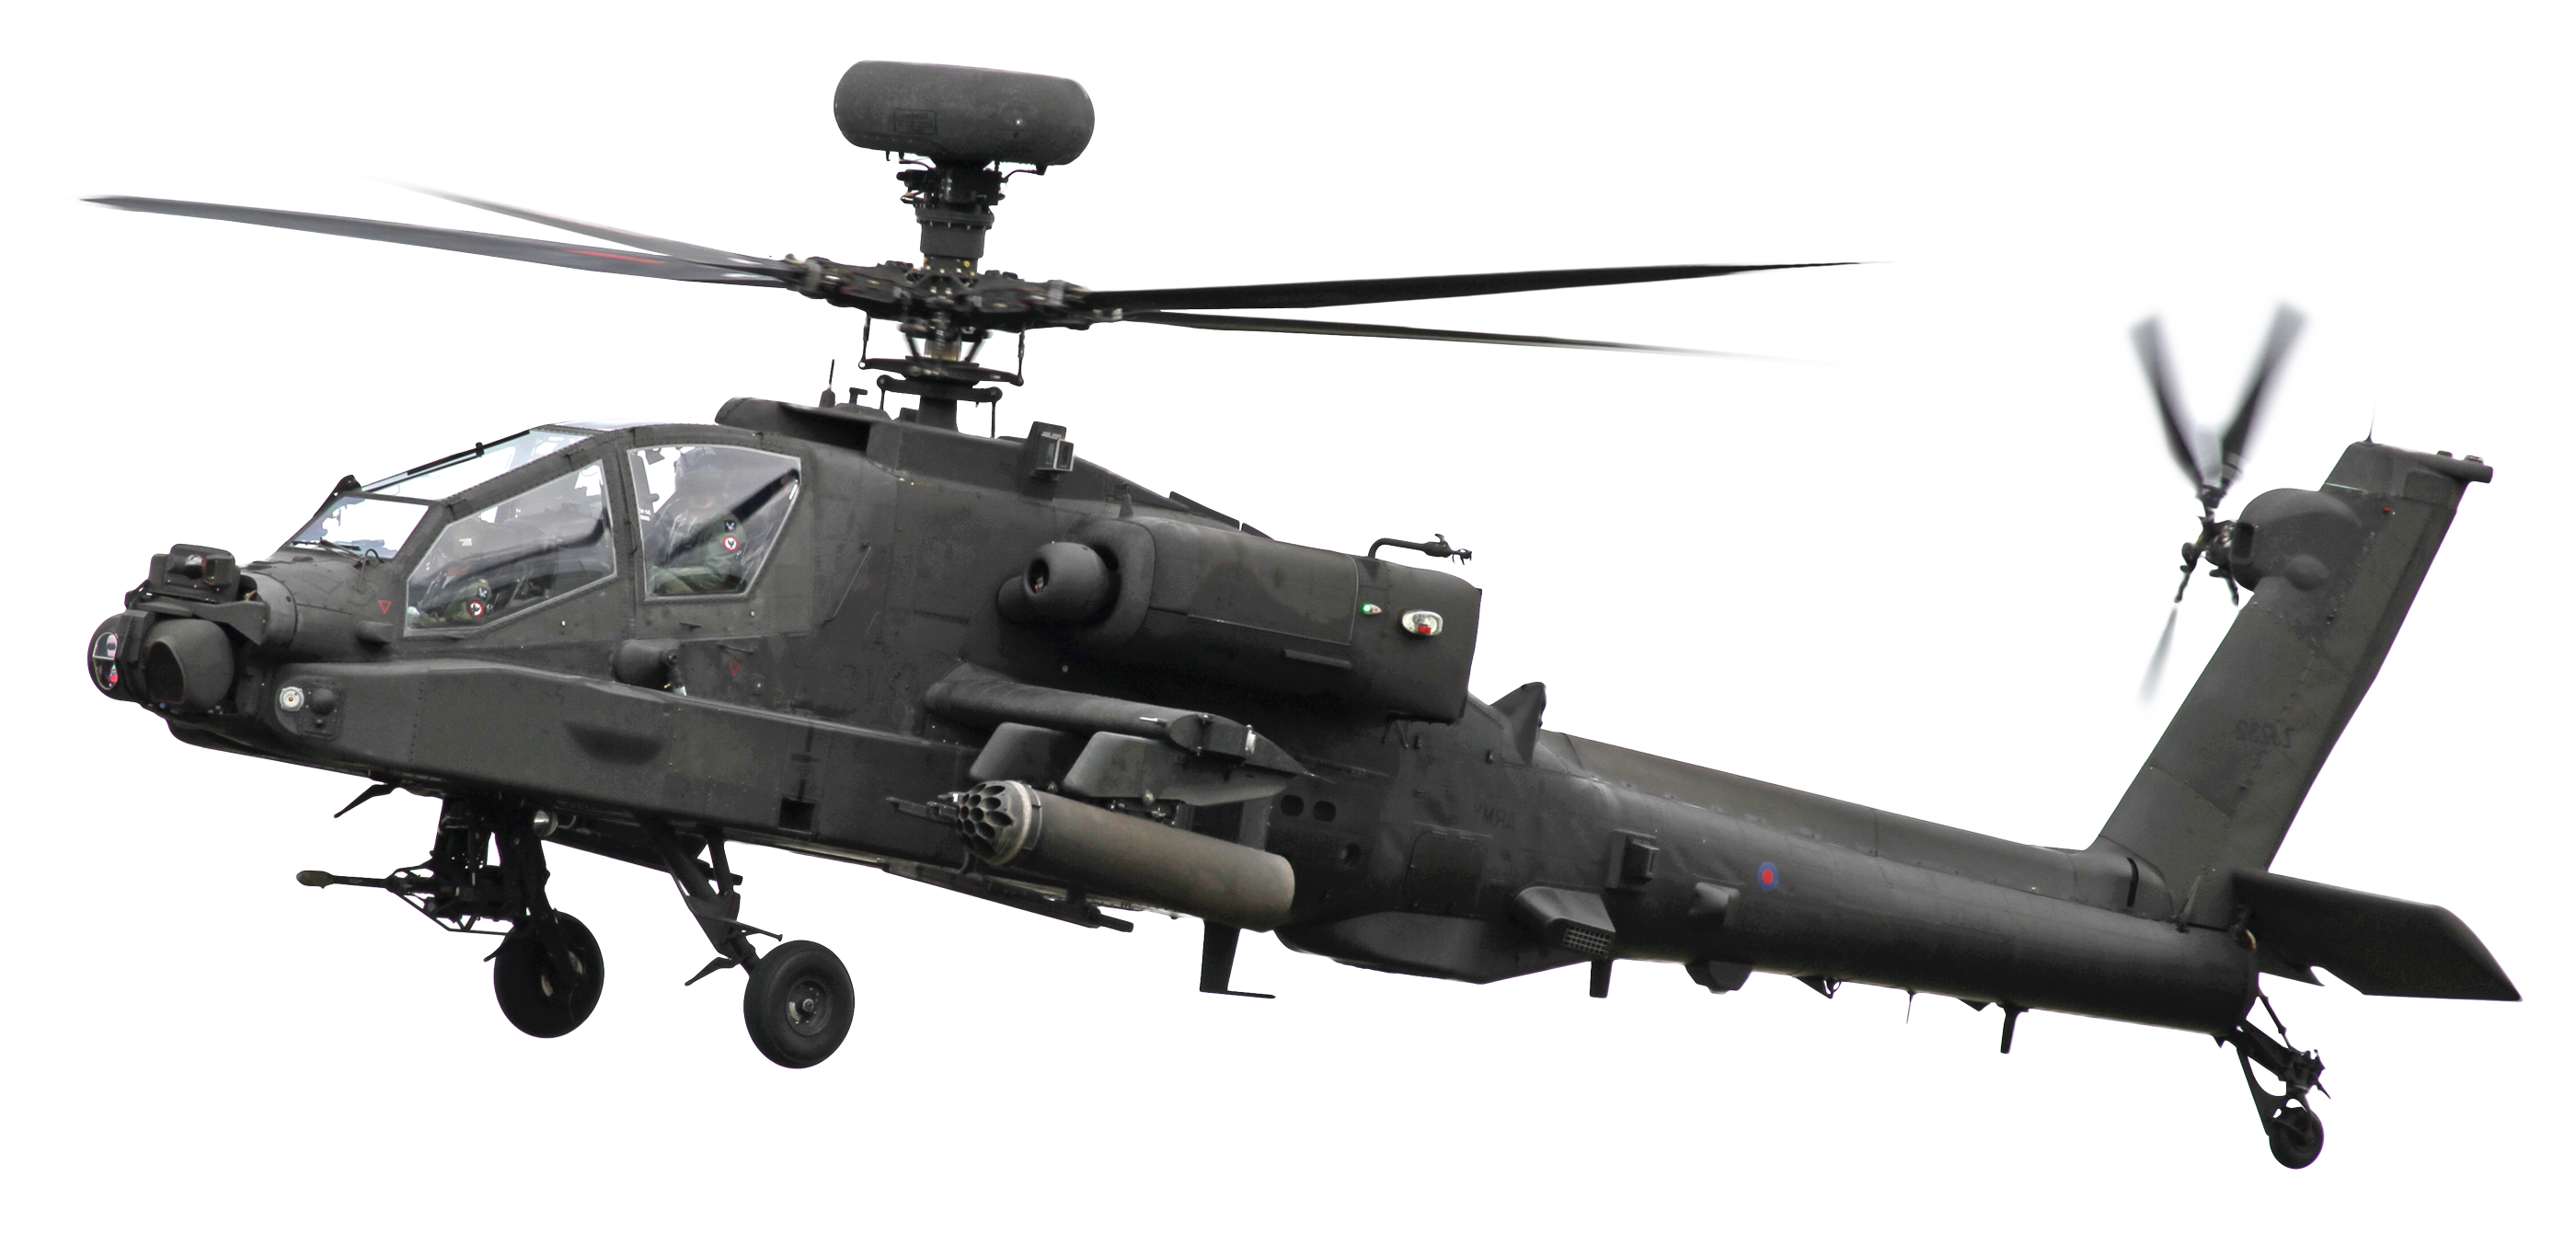 Army Helicopter Military PNG 210x102 - Army Helicopter PNG Transparent Free  Images - Helicopter HD PNG